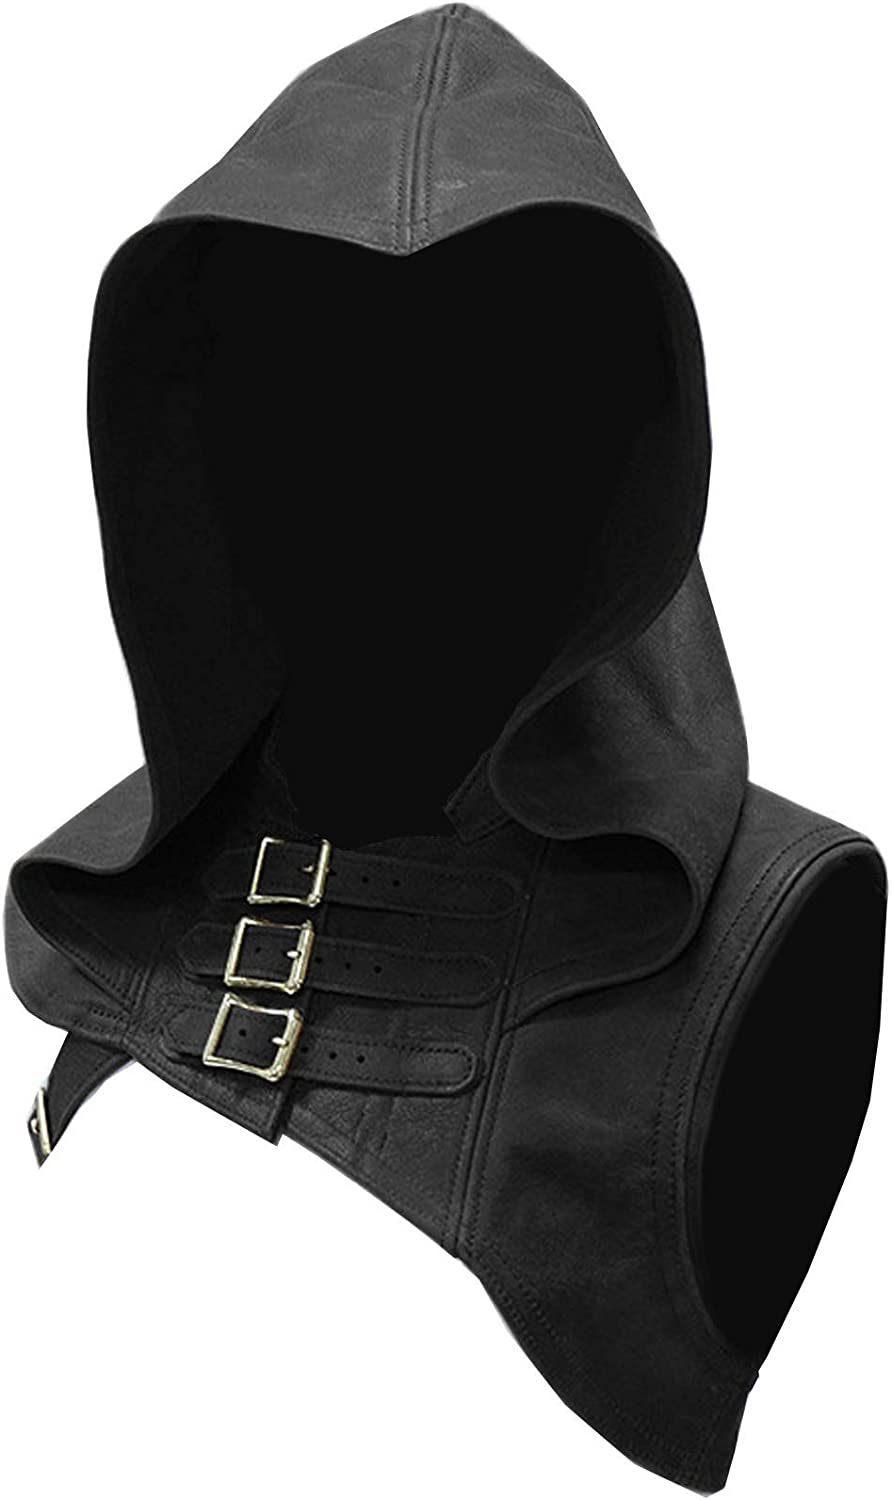 Uyebros Medieval Costume Hooded Balaclavas Medieval Gothic Cowl Hat Costumes for Halloween LARP Cosplay Party